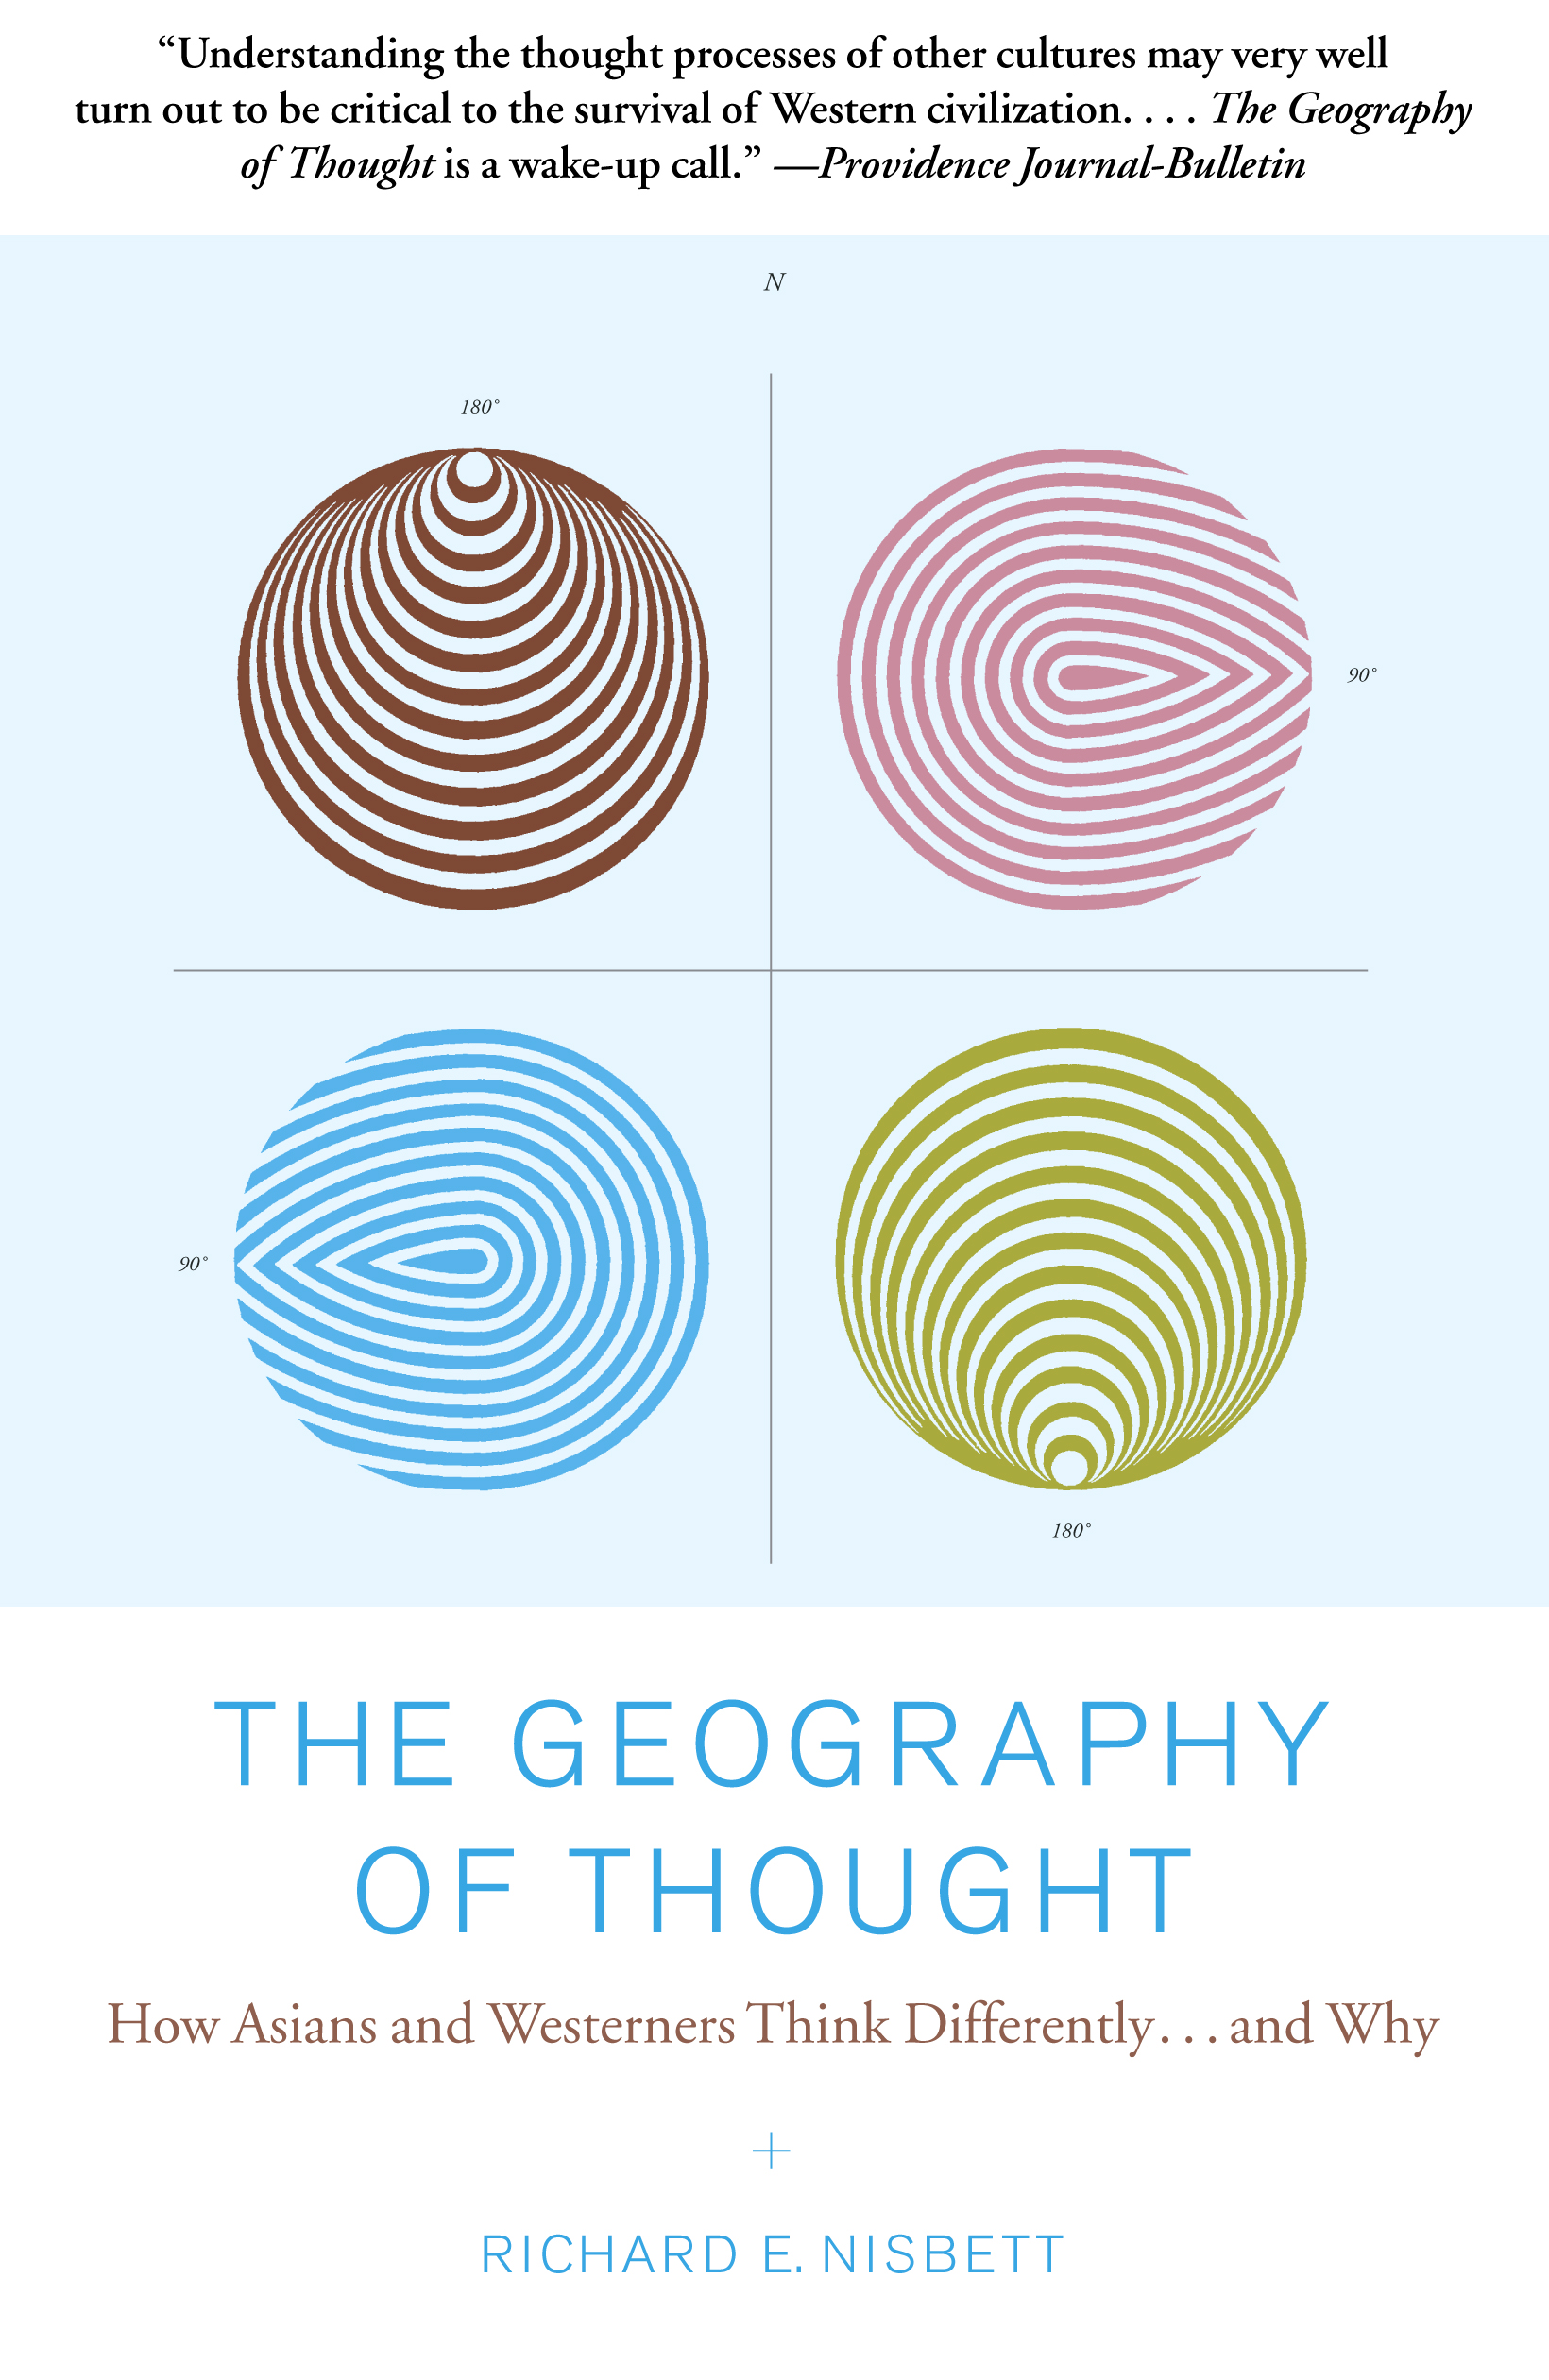 the geography of thought by richard Geography of thought - leadership crossroads his book the geography of thought i did – and came away fascinated richard e nisbett's.